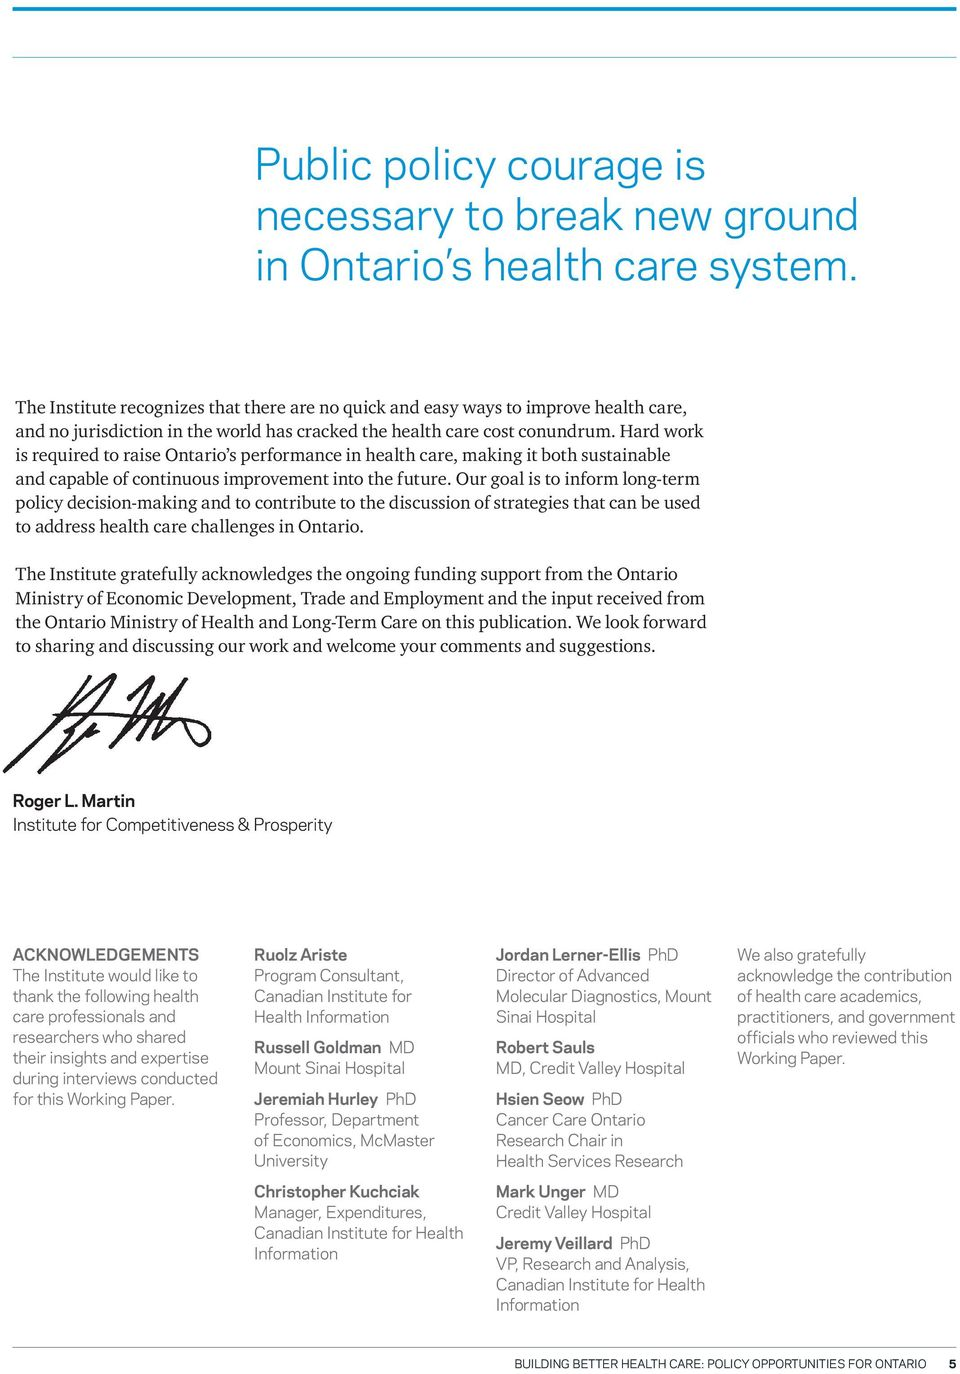 Hard work is required to raise Ontario s performance in health care, making it both sustainable and capable of continuous improvement into the future.